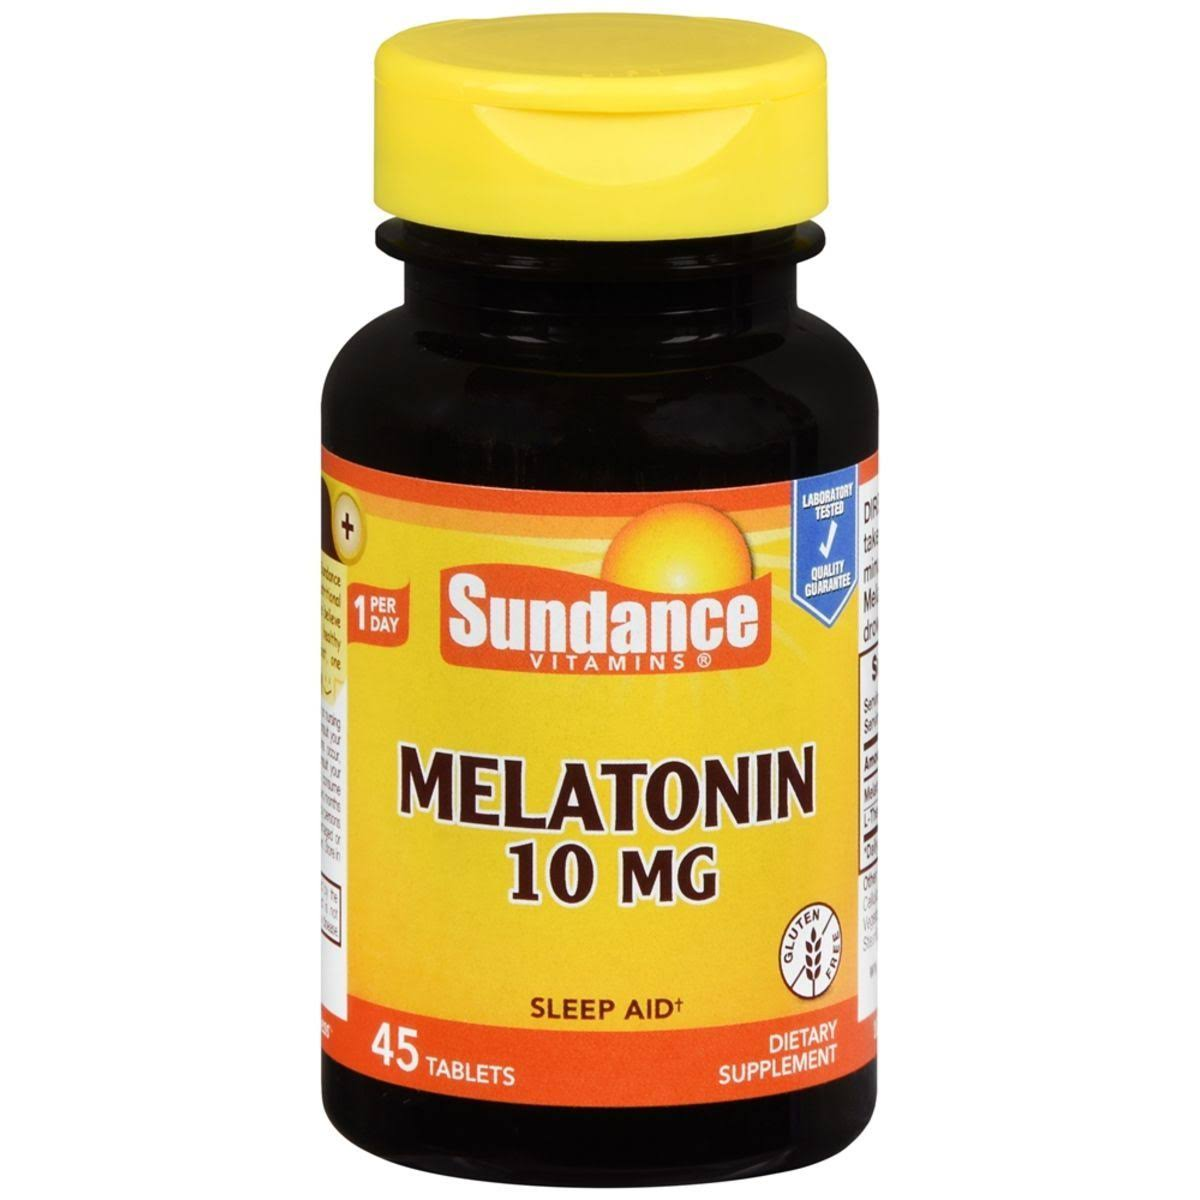 Sundance Vitamins Melatonin Sleep Aid Supplement - 10mg, 45ct